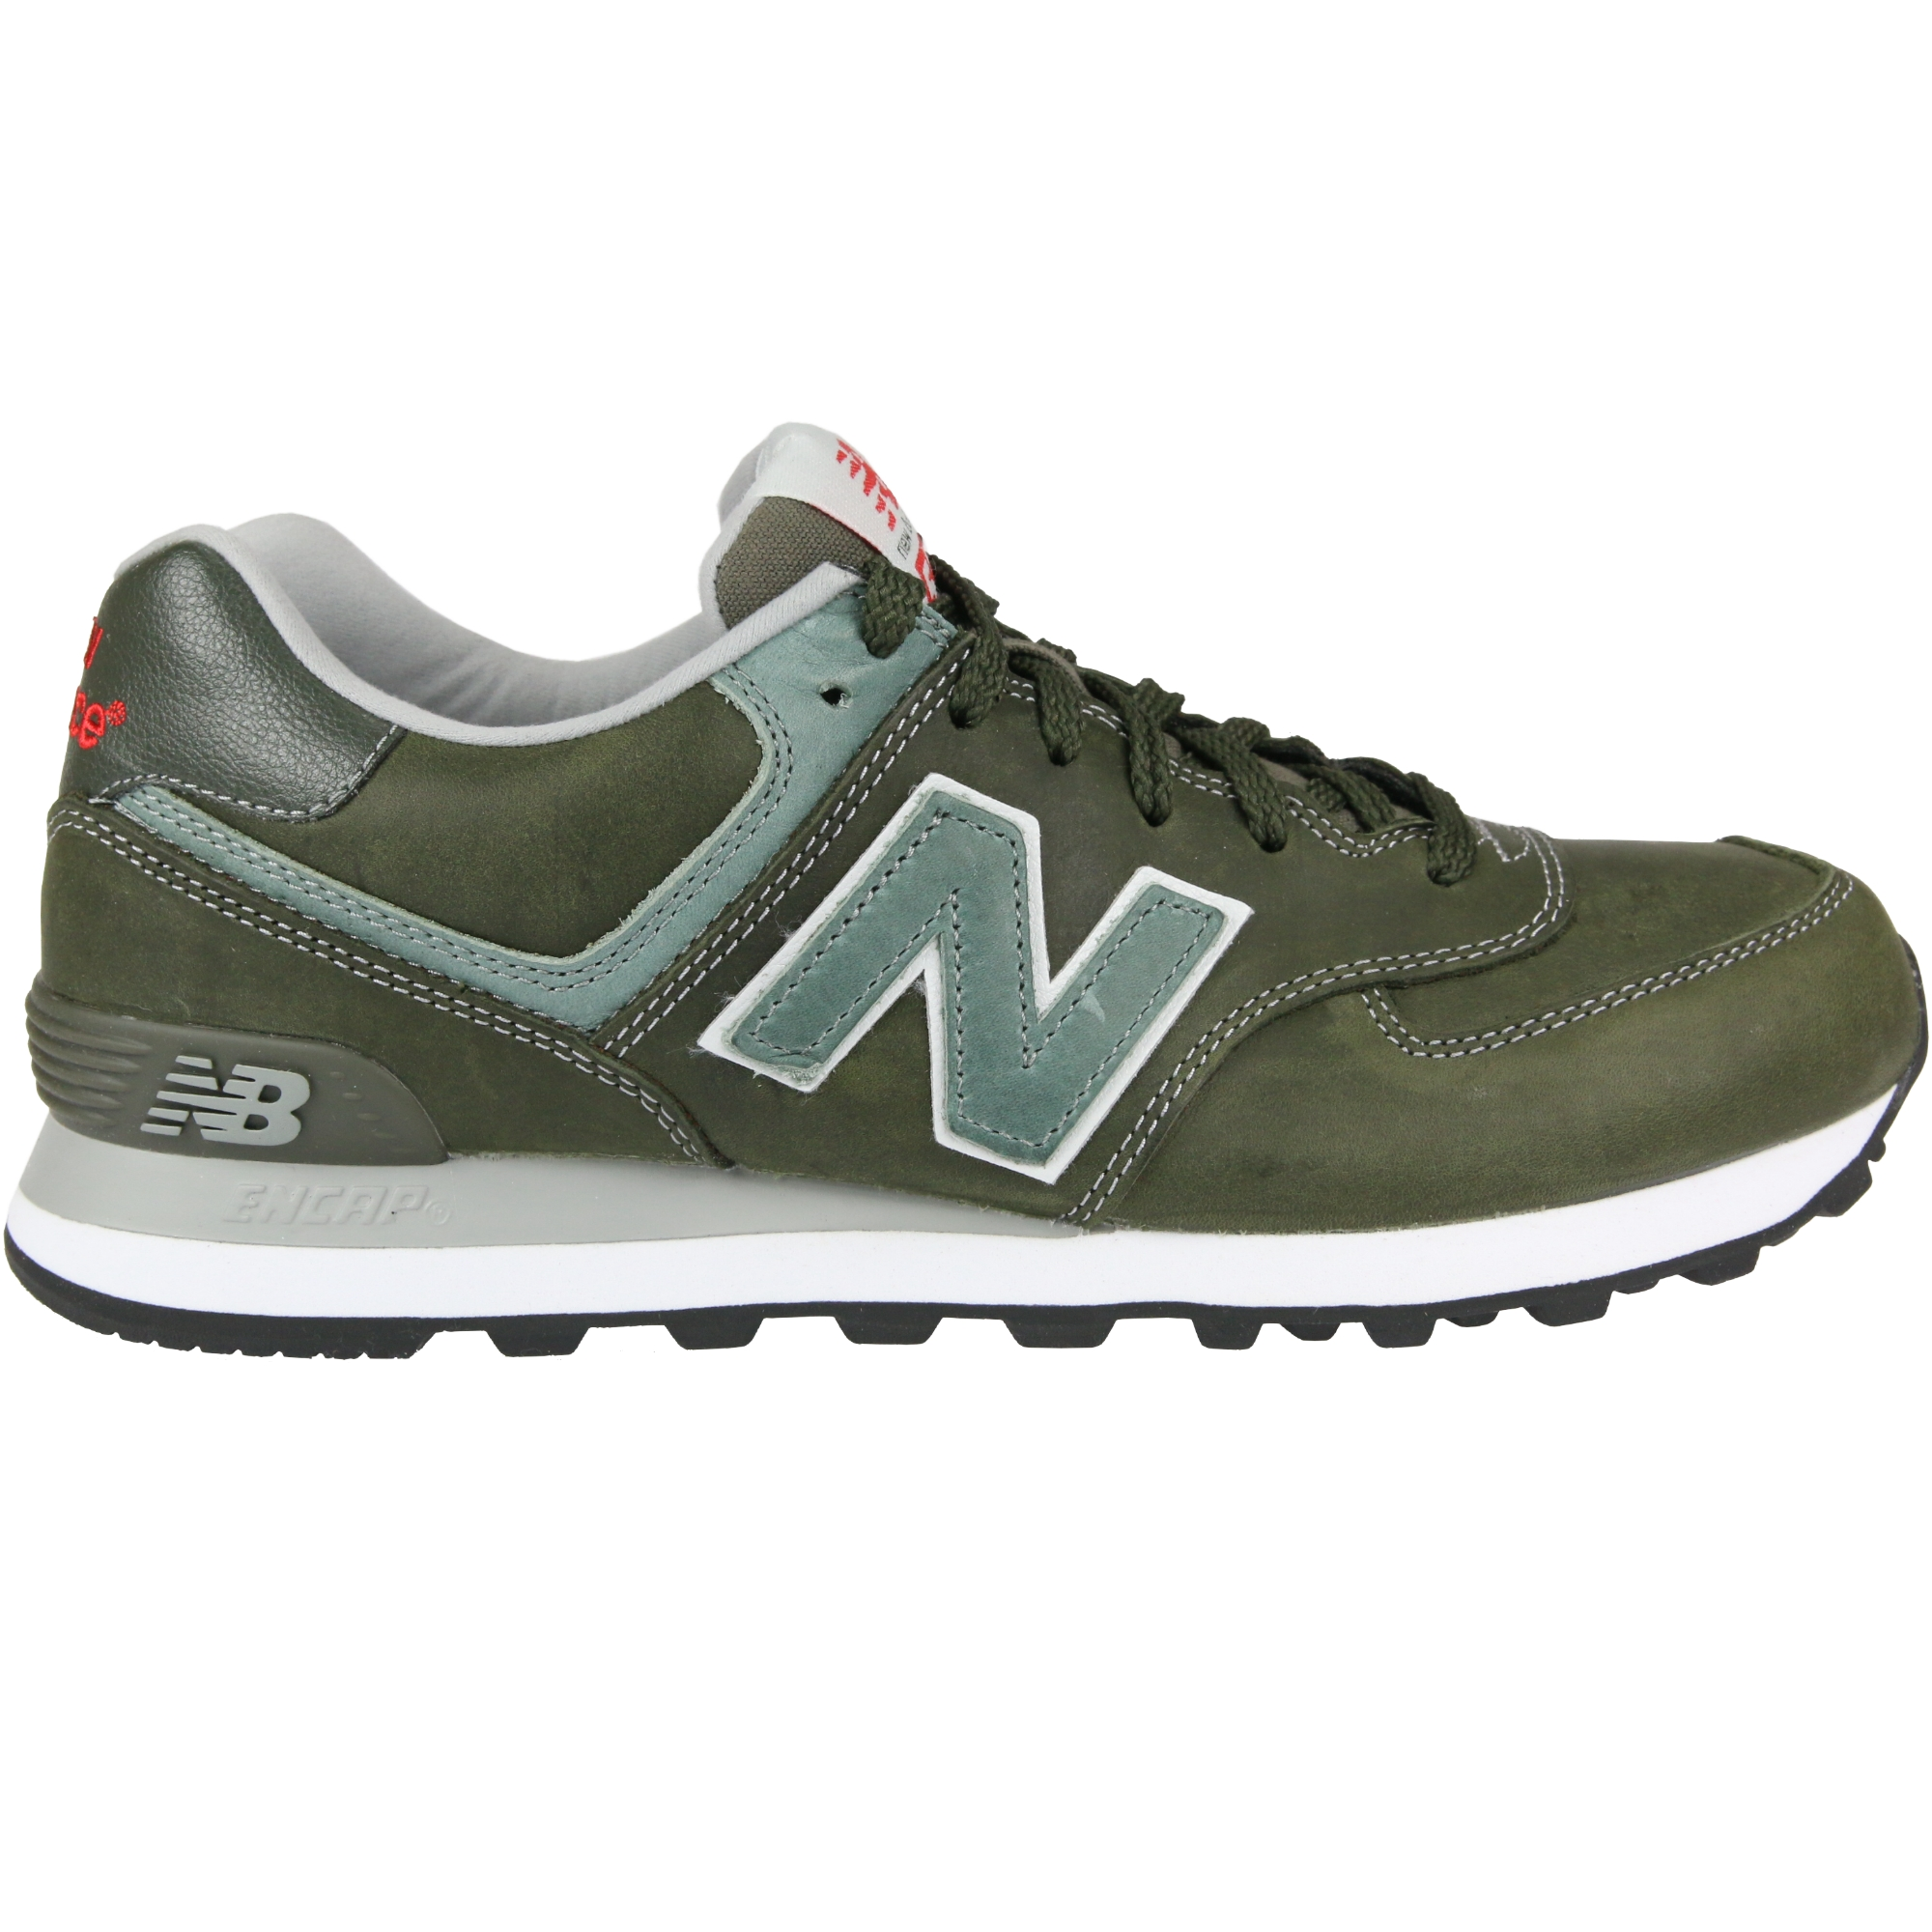 New Balance Damen Leder